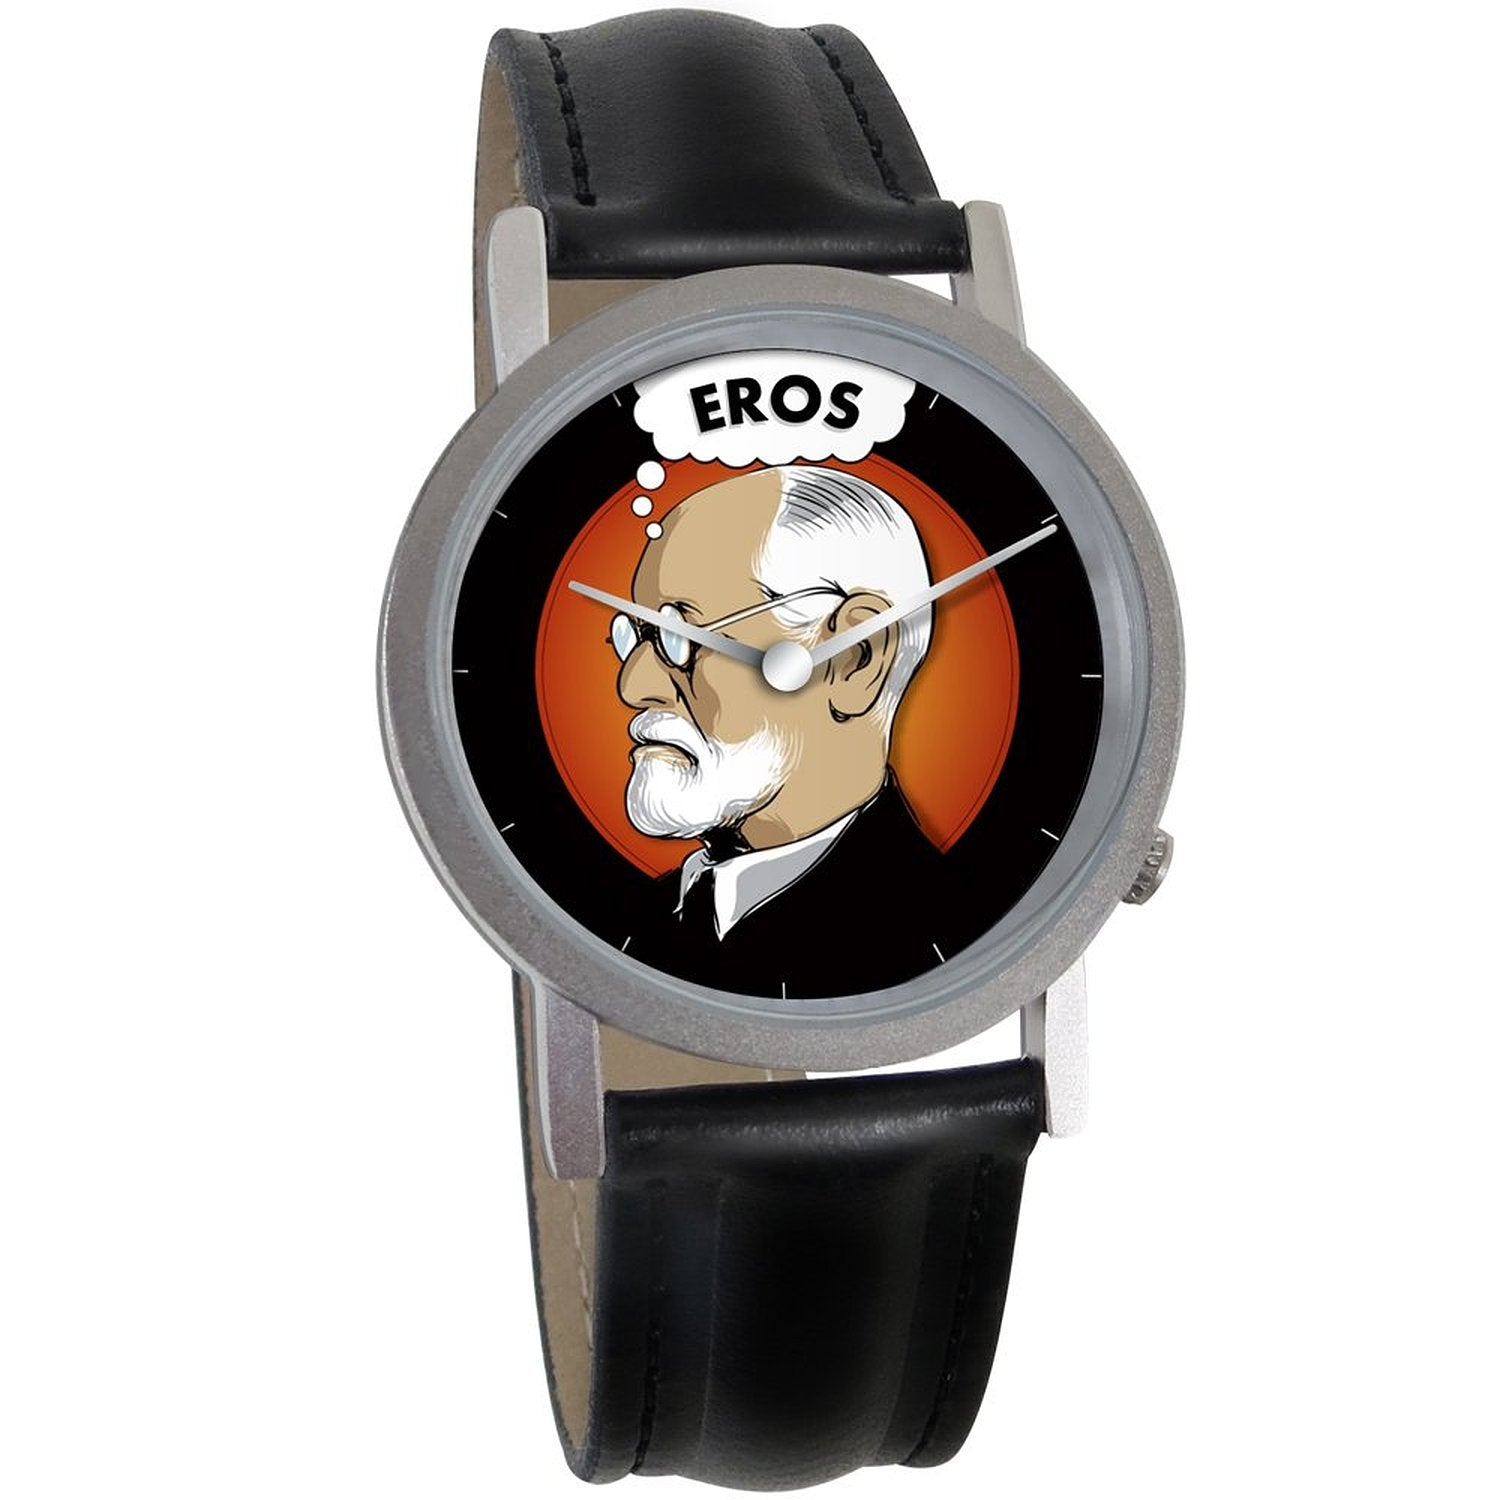 Freud Wrist Watch